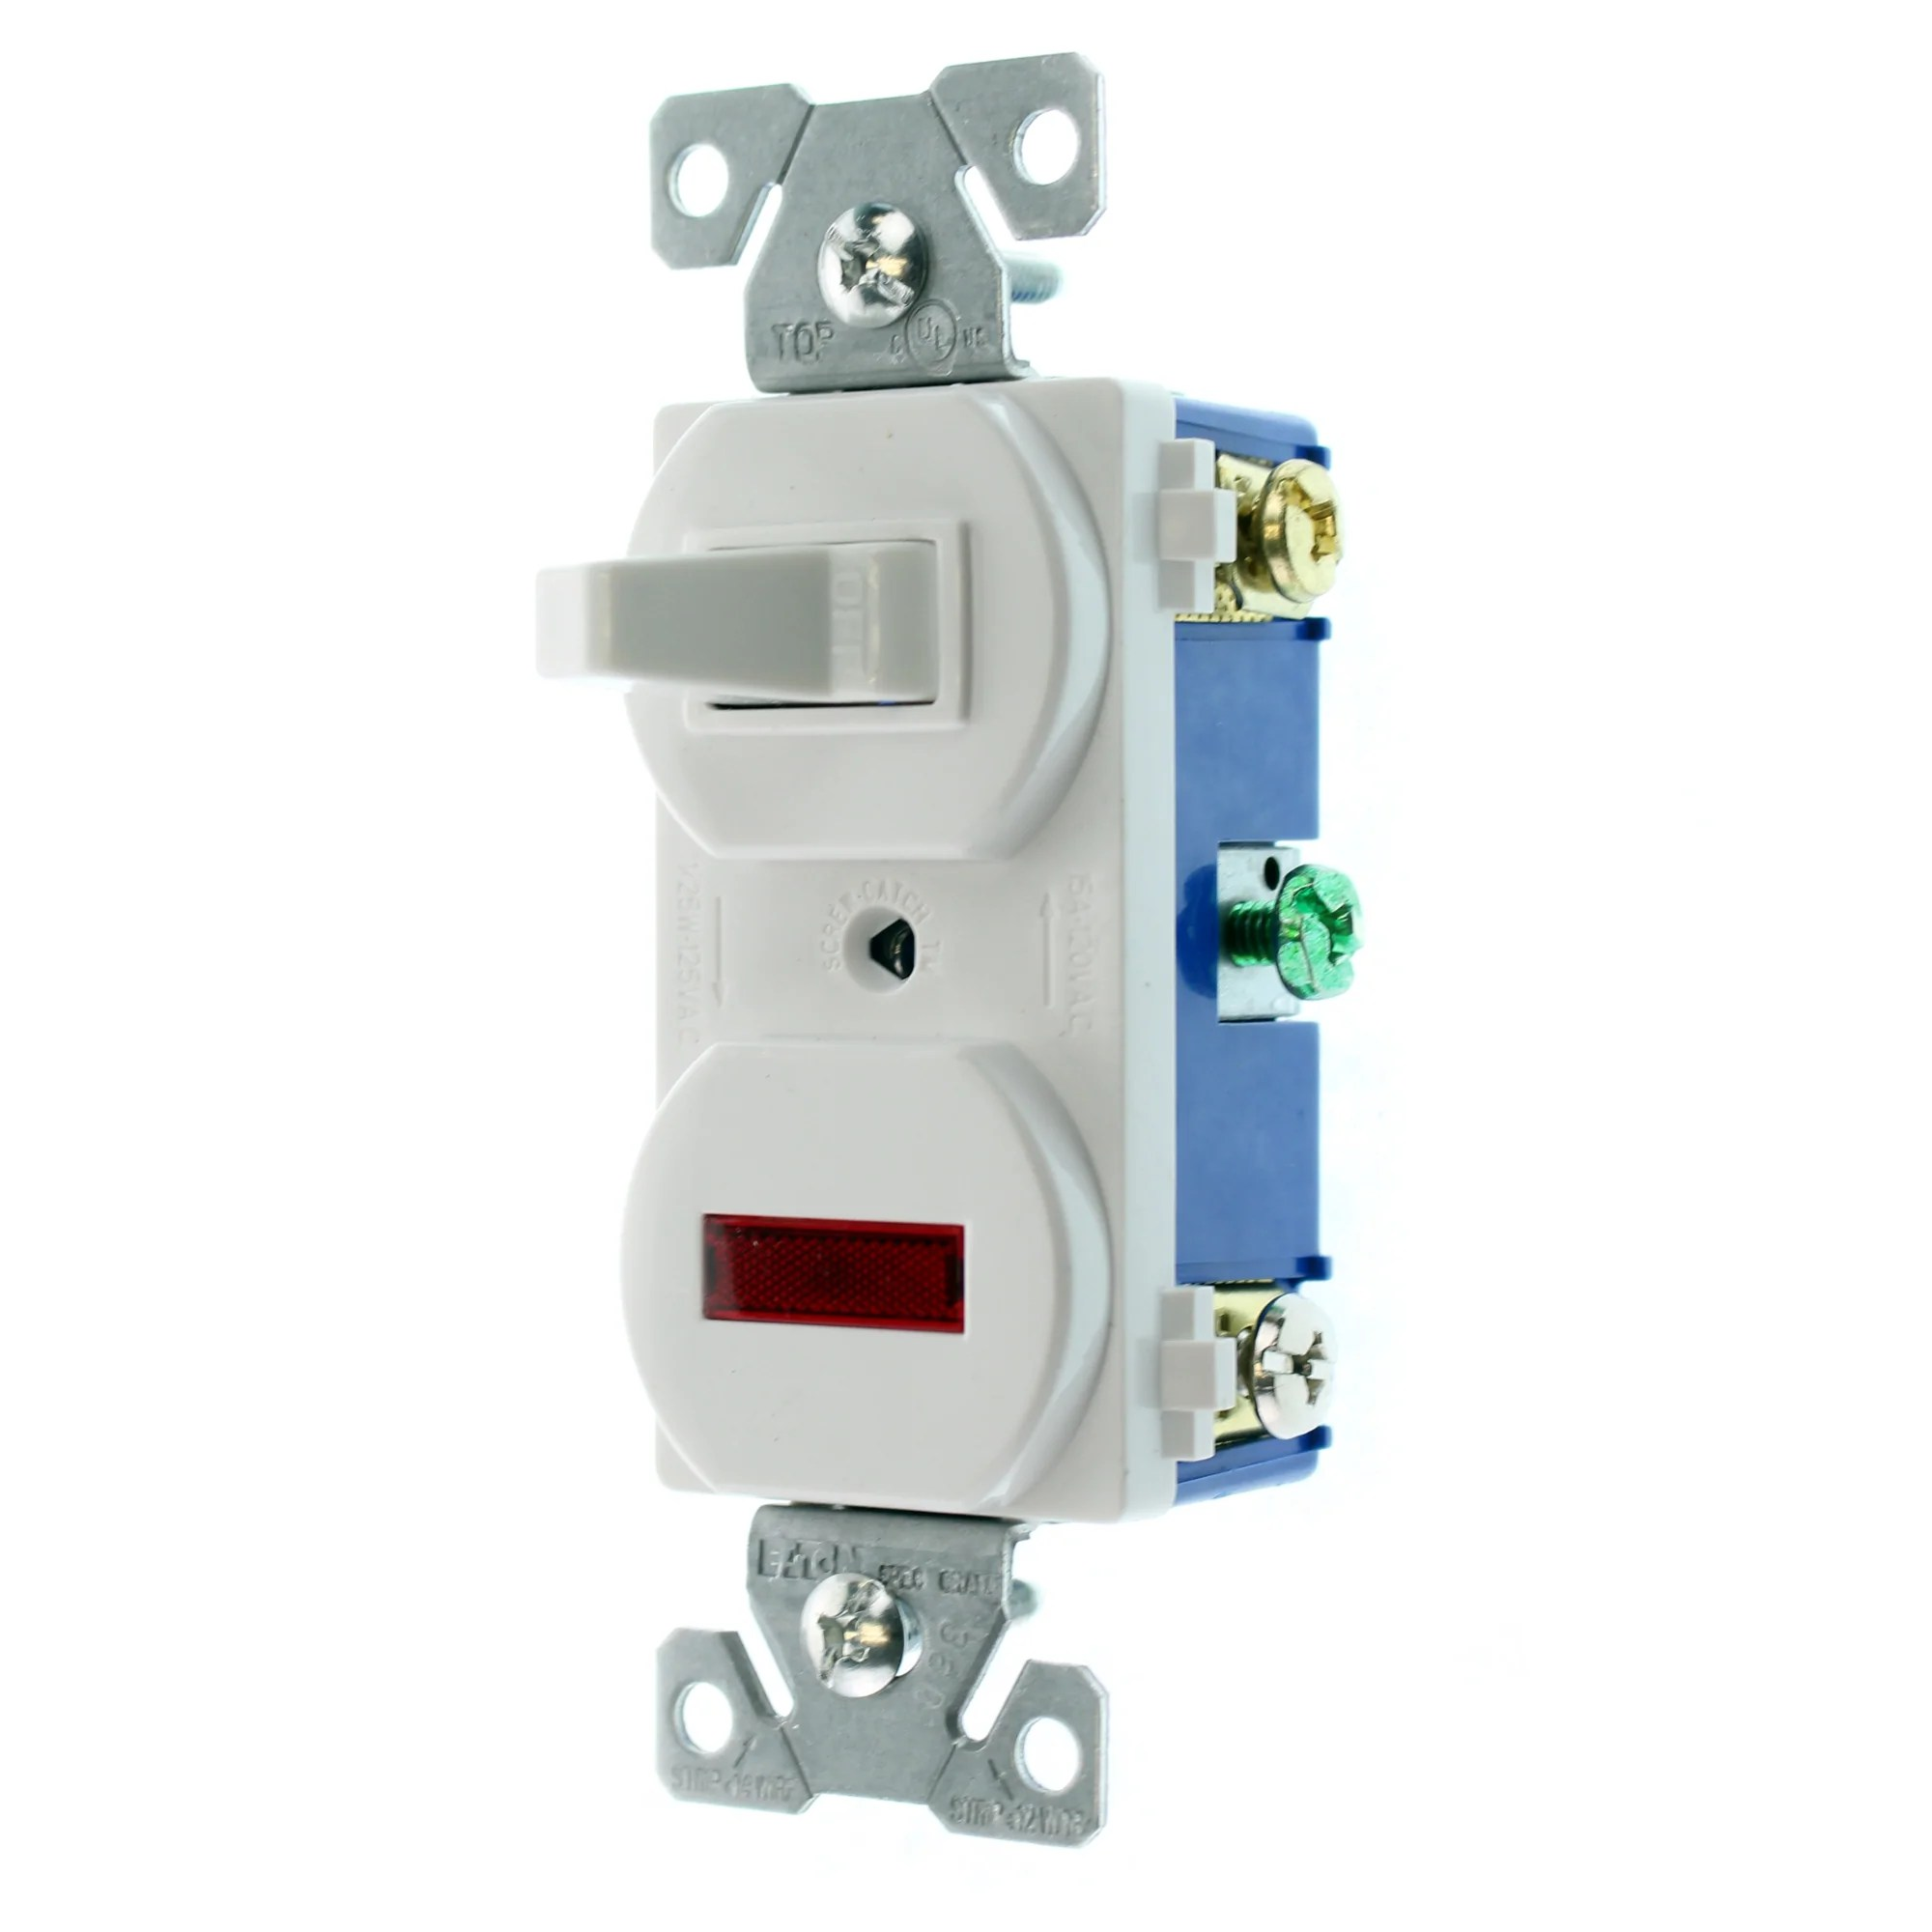 medium resolution of eaton cooper 277w sp l toggle switch w pilot light 1 pole 15a how to wire cooper 277 pilot light switch share the knownledge